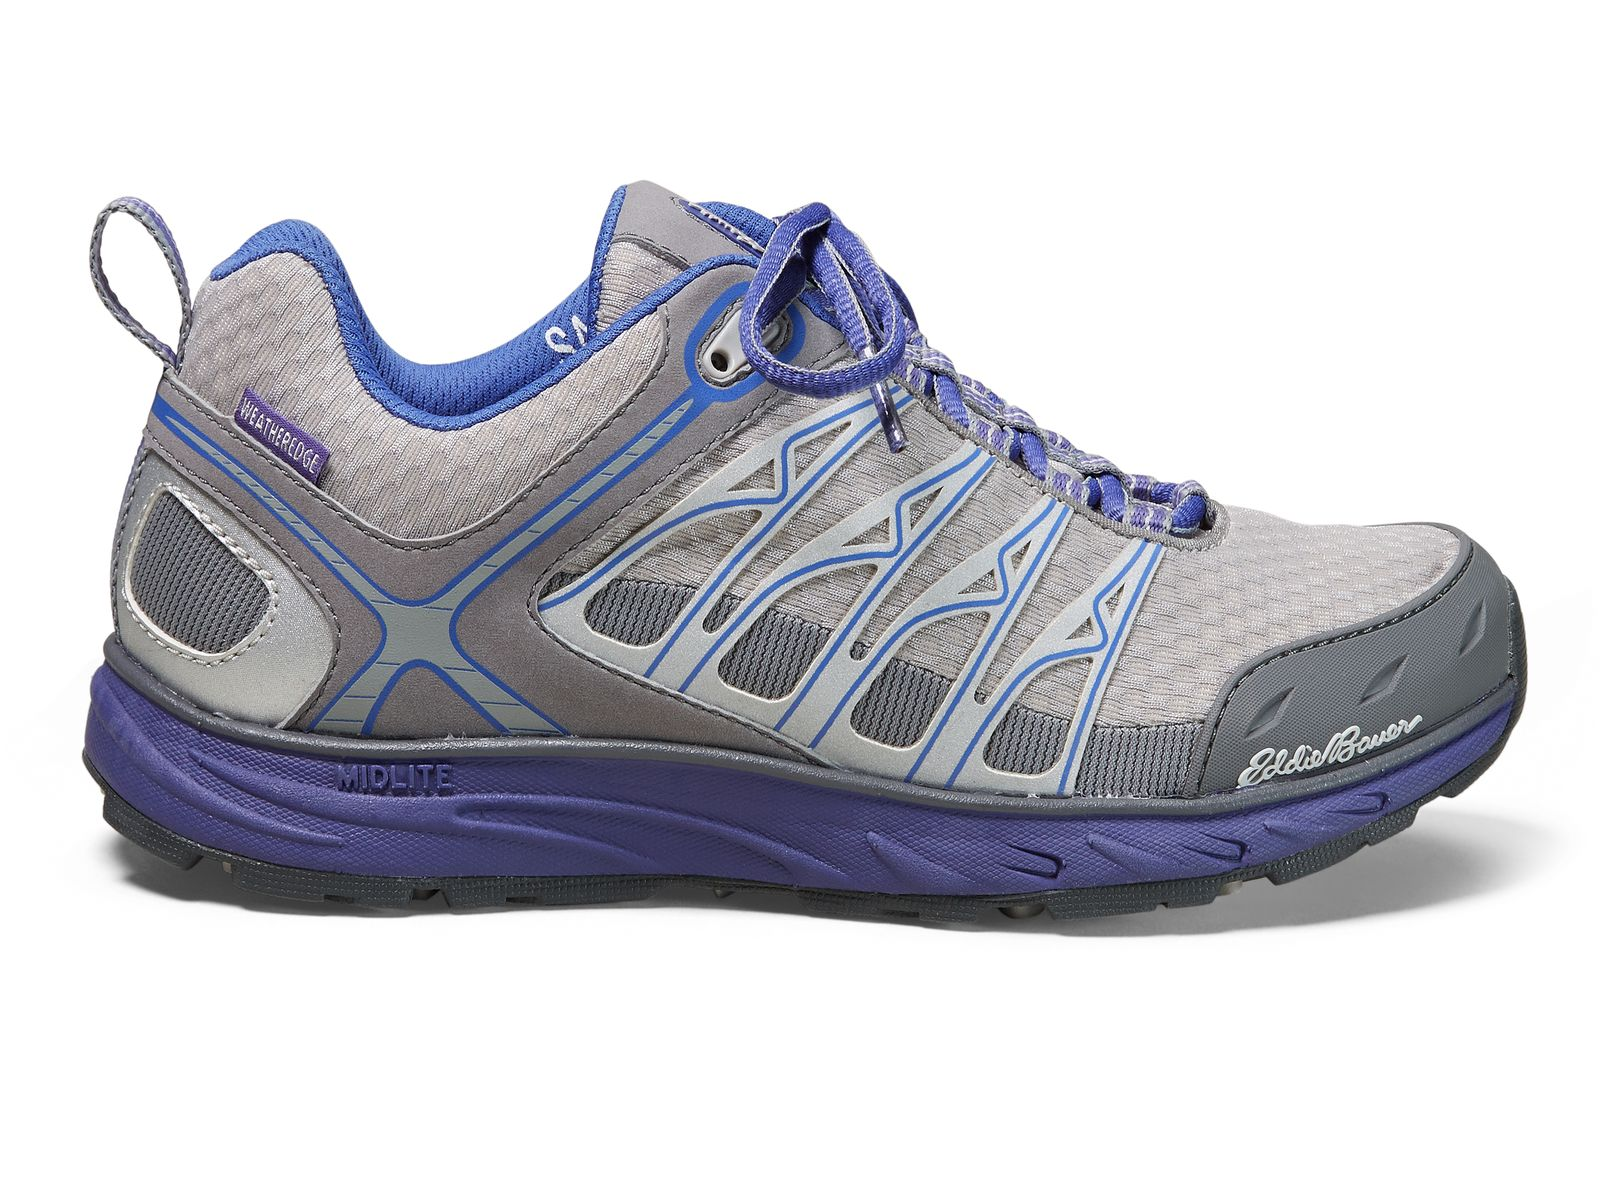 Eddie Trail Bauer Highline Trail Eddie Pro Outdoorschuh 45d569